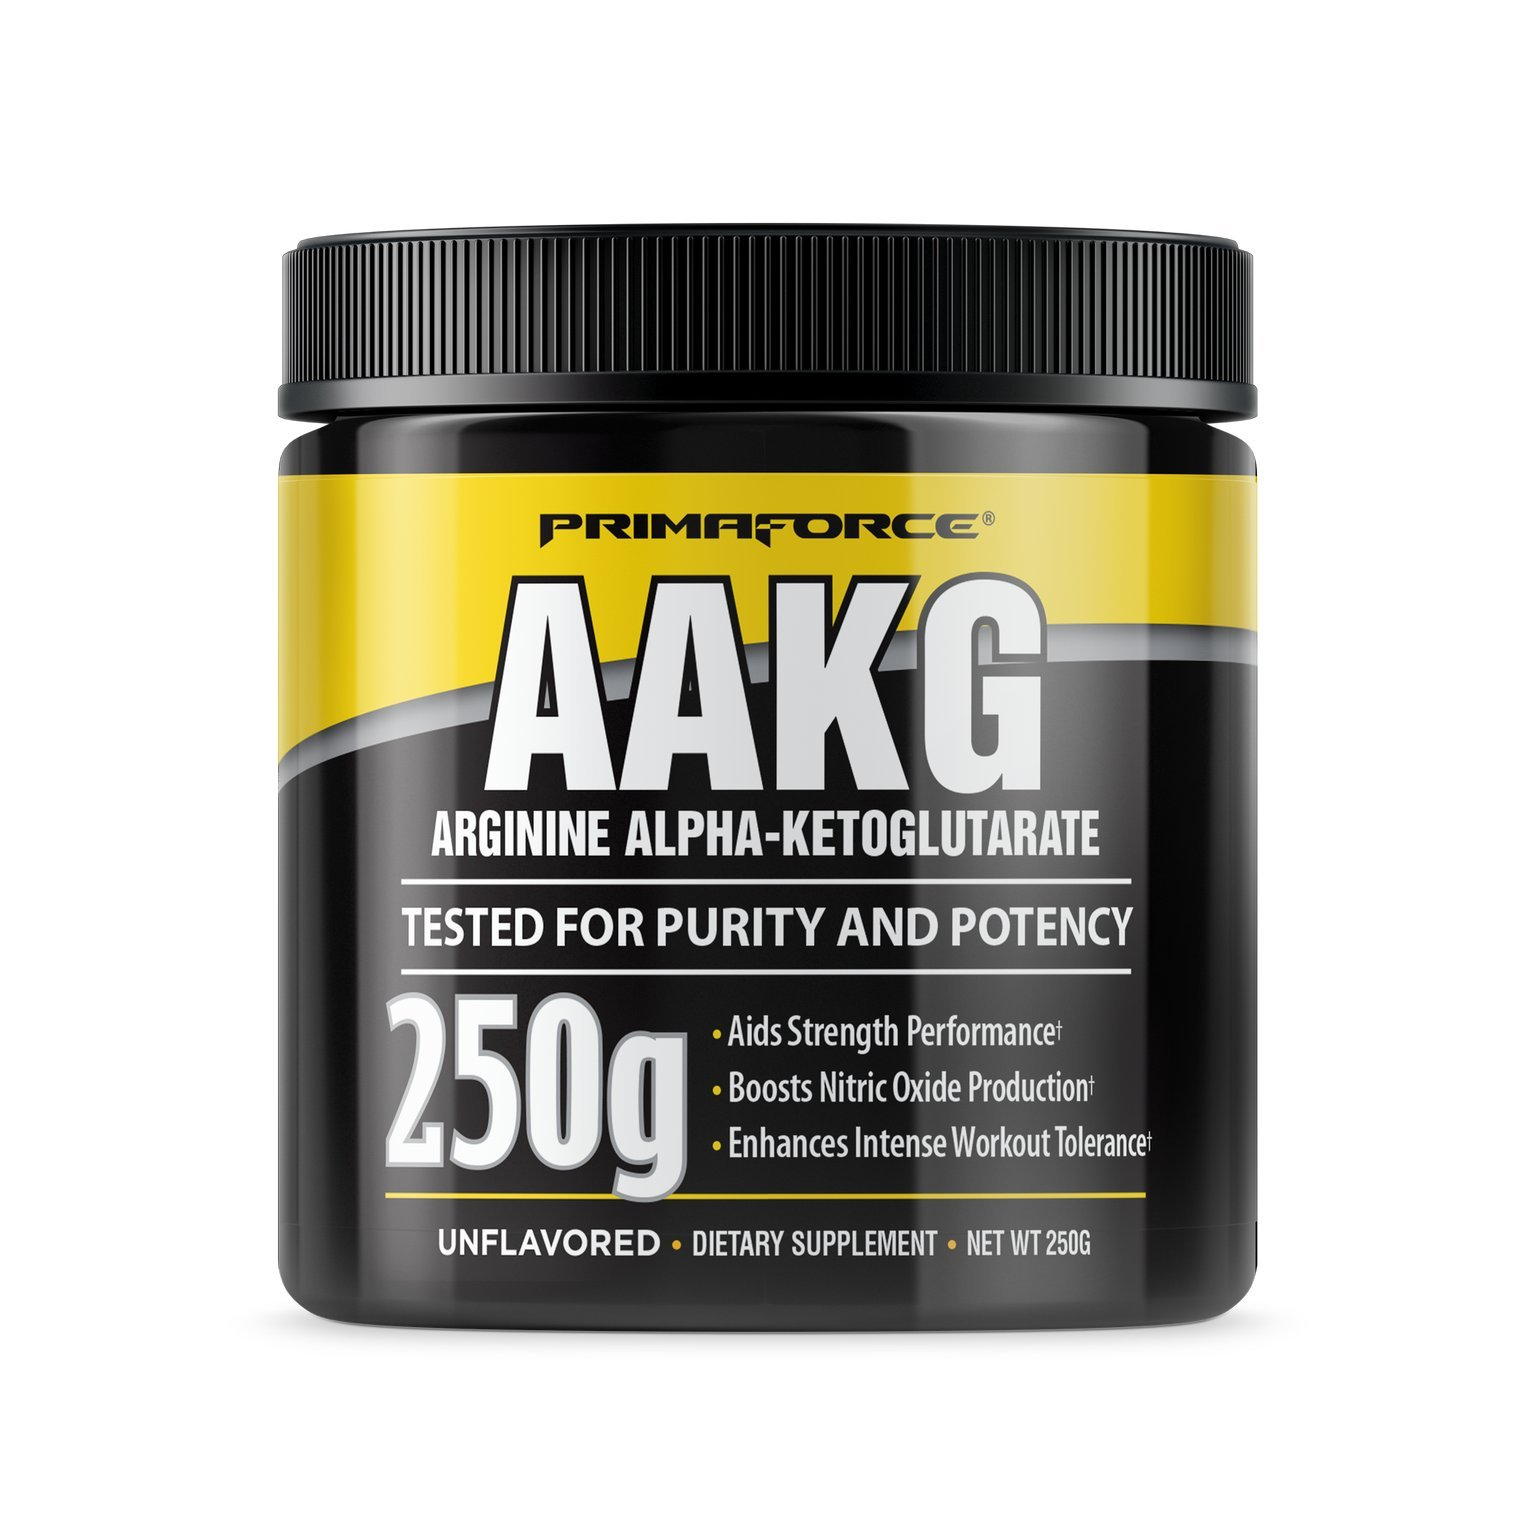 PrimaForce AAKG Powder Supplement,  250 Grams - Aids Strength Performance / Boosts Nitric Oxide Production / Enhances Intense Workout Tolerance by Primaforce